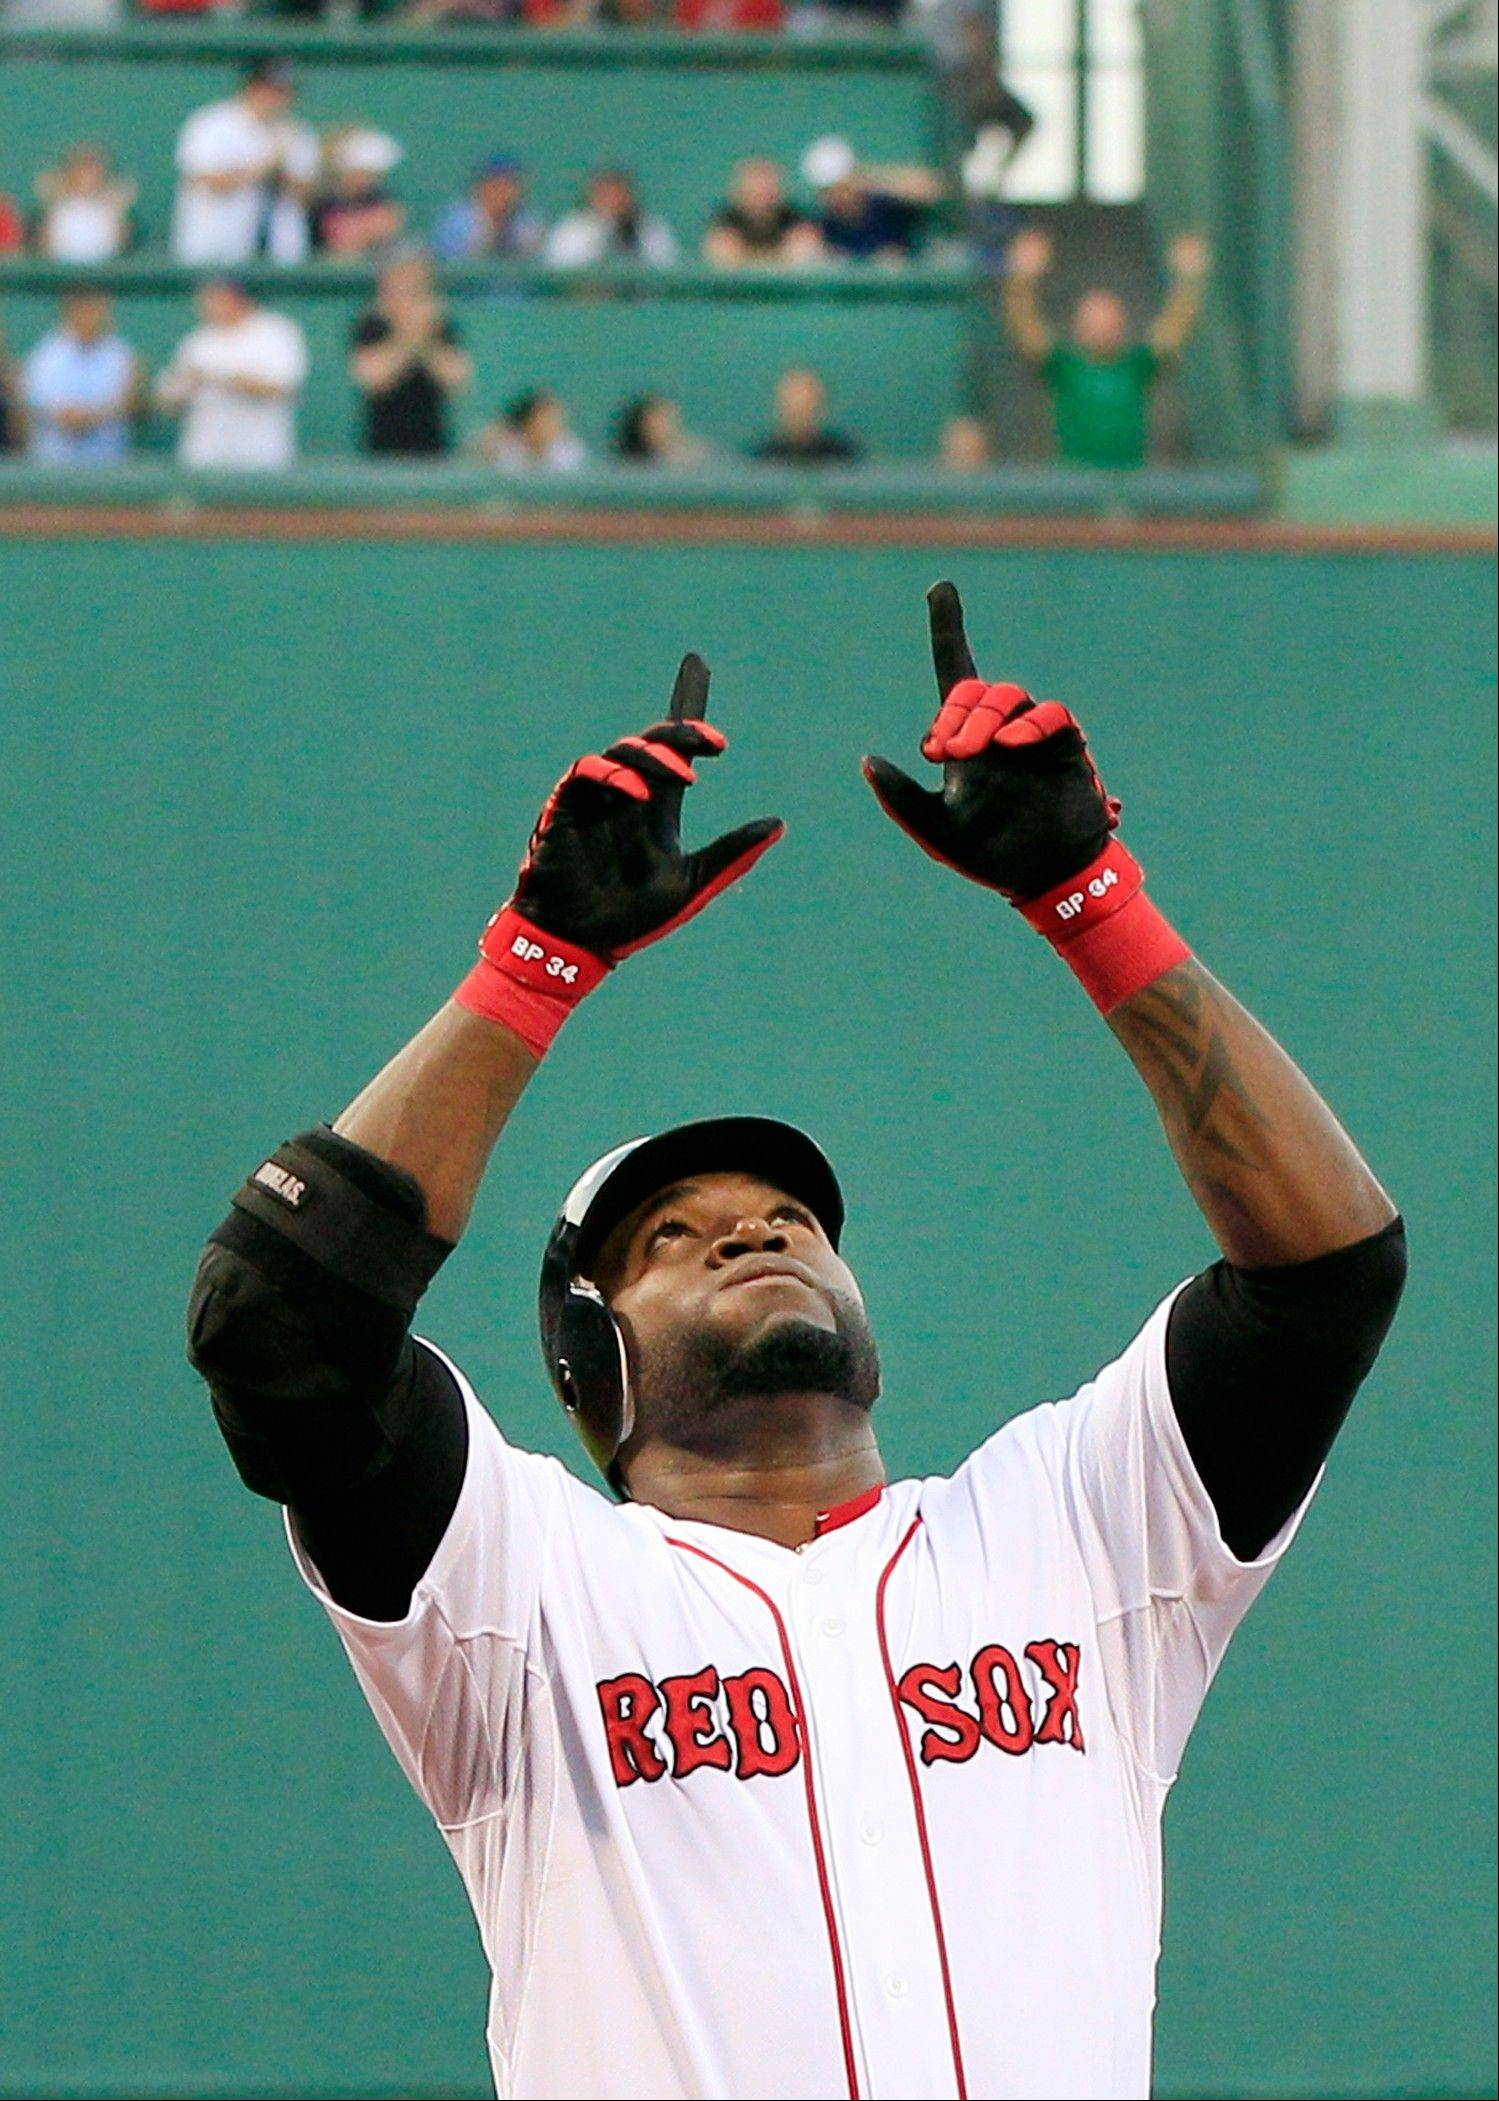 Boston Red Sox designated hitter David Ortiz gestures as he crosses the plate Tuesday after hitting a two-run homer against the Miami Marlins in the first inning at Fenway Park in Boston.